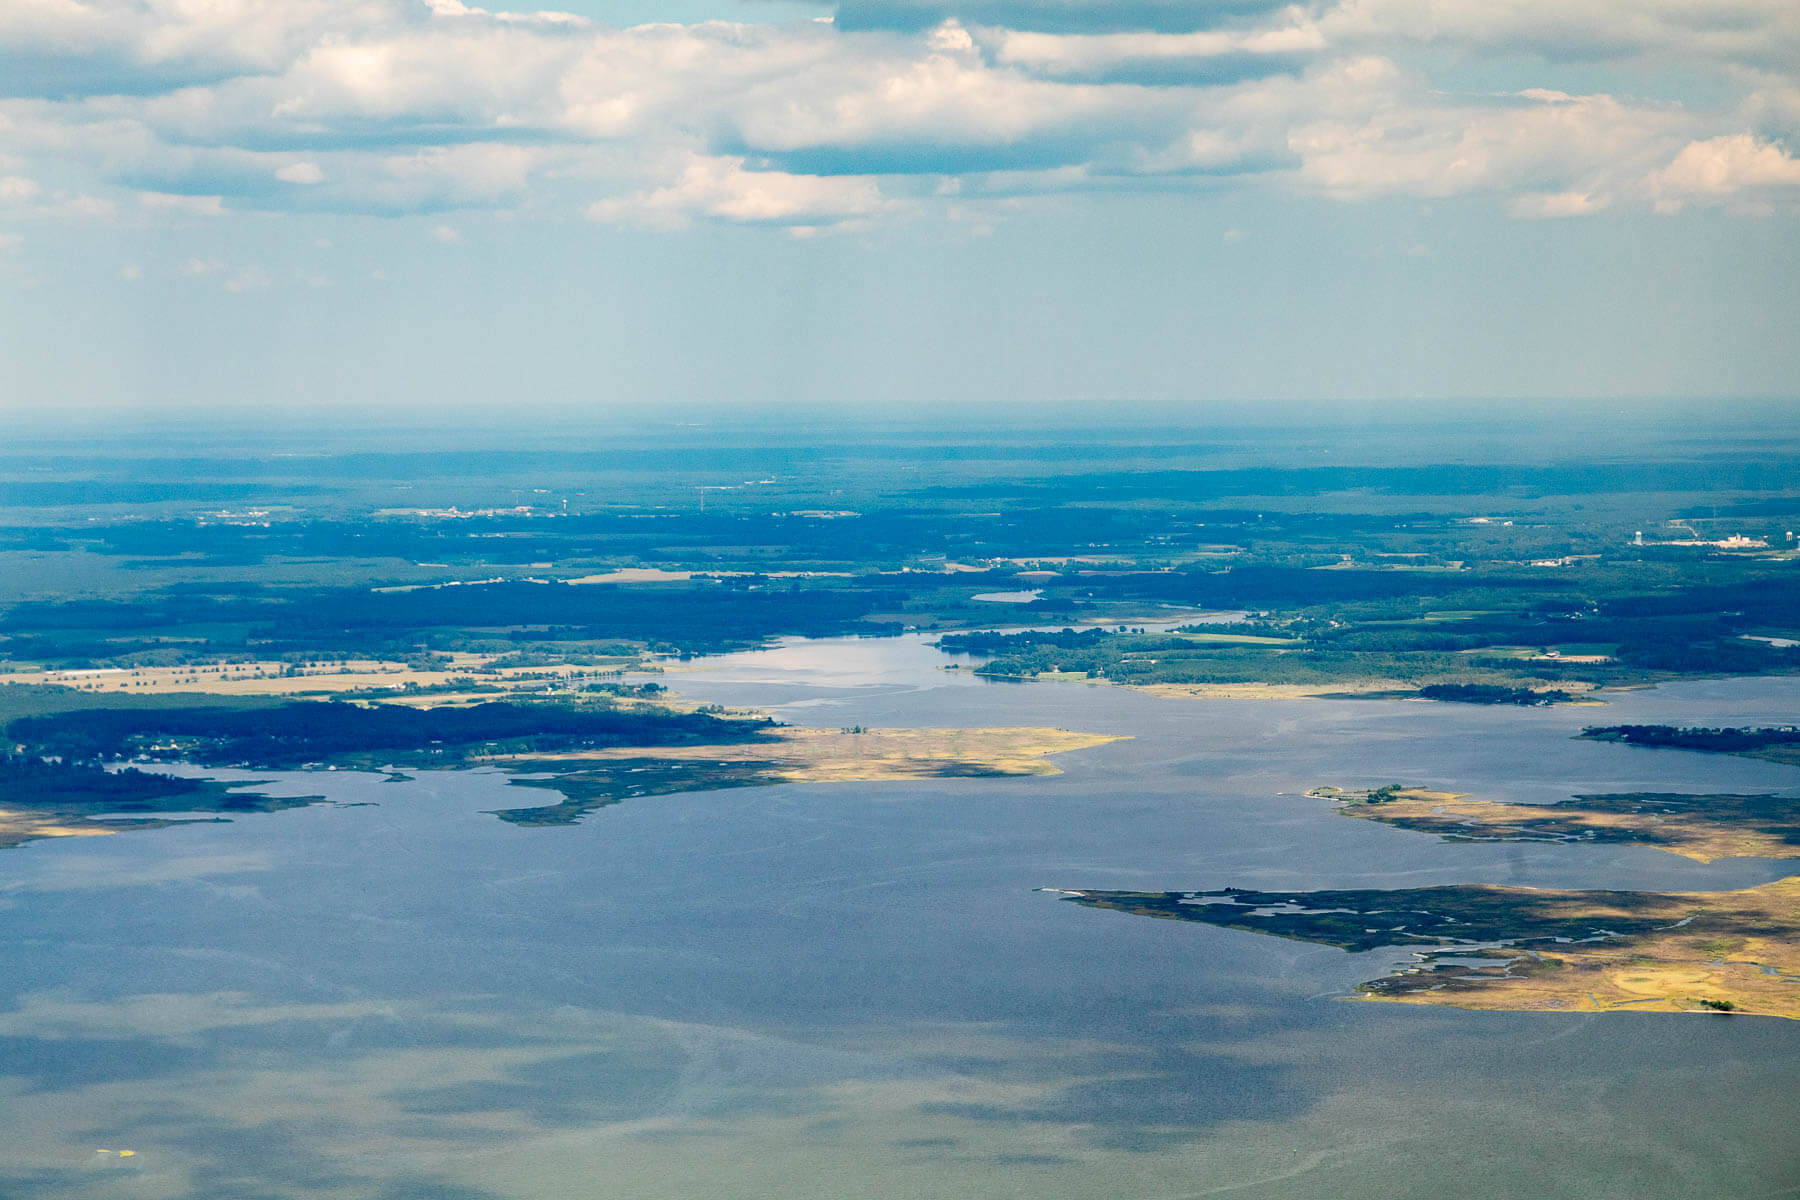 Aerial view of water, wetlands and land